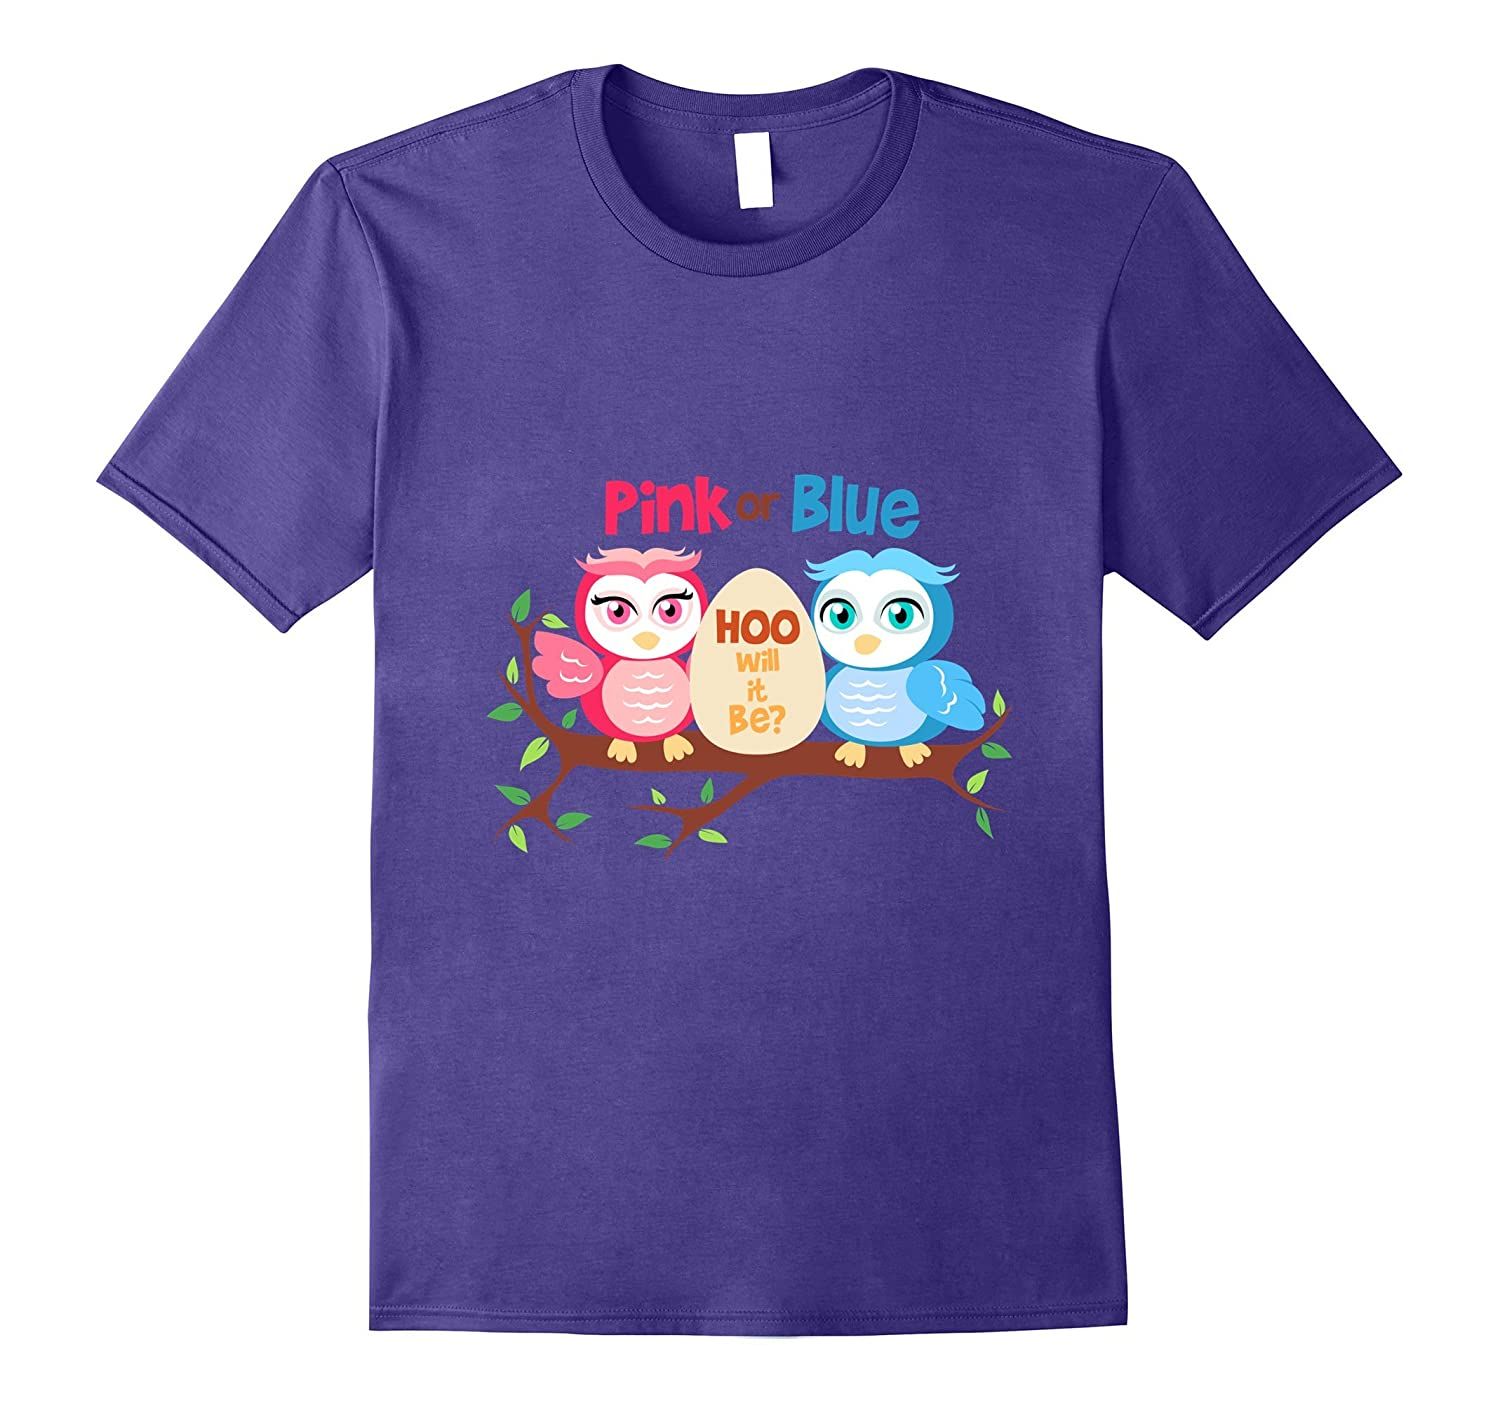 Gender reveal party t shirt owl pink or blue hoo will it be-Art